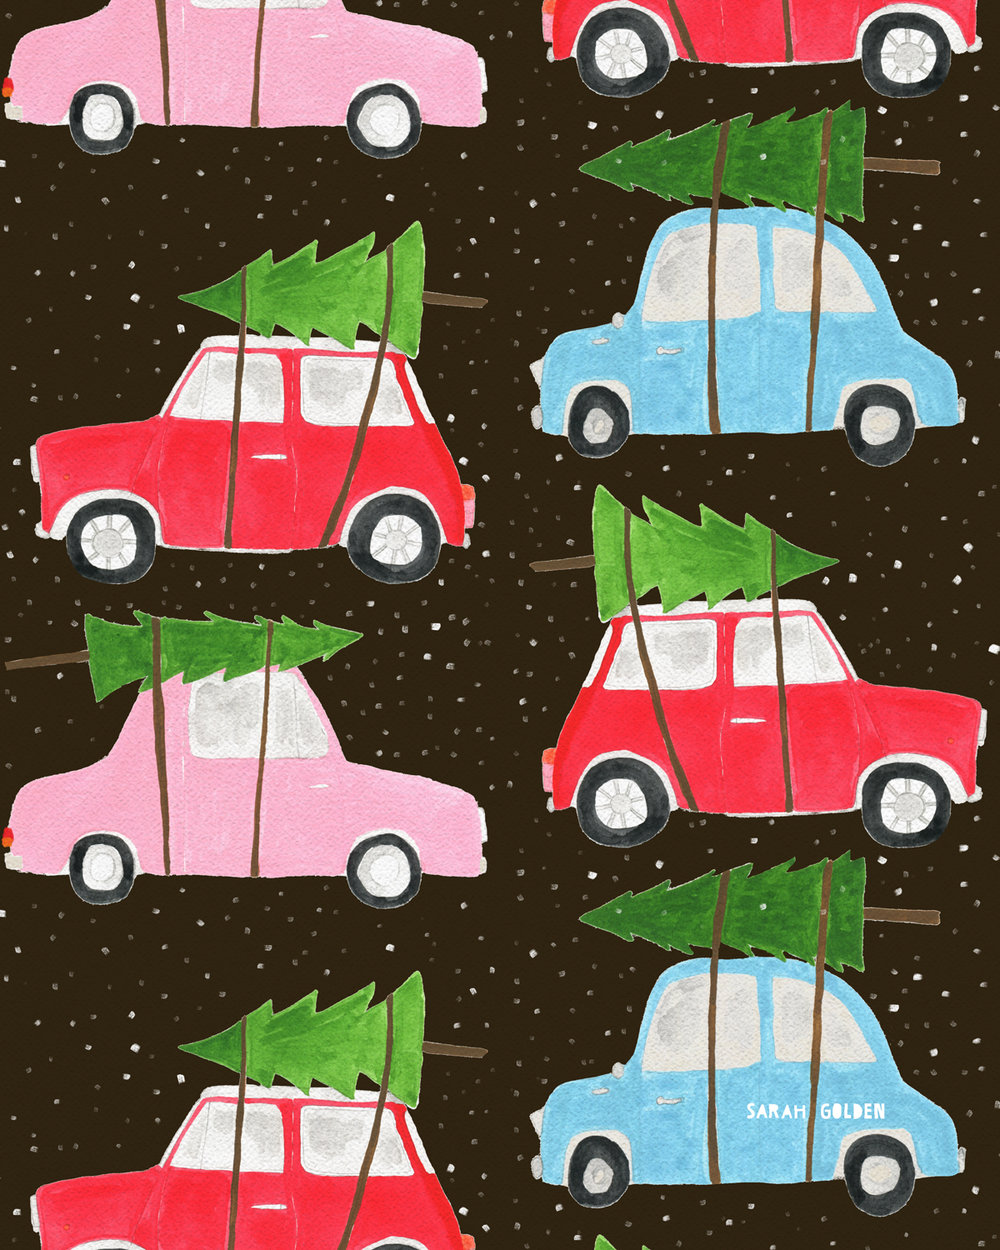 Christmas_tree_cars_Sarah_Golden_web.jpg